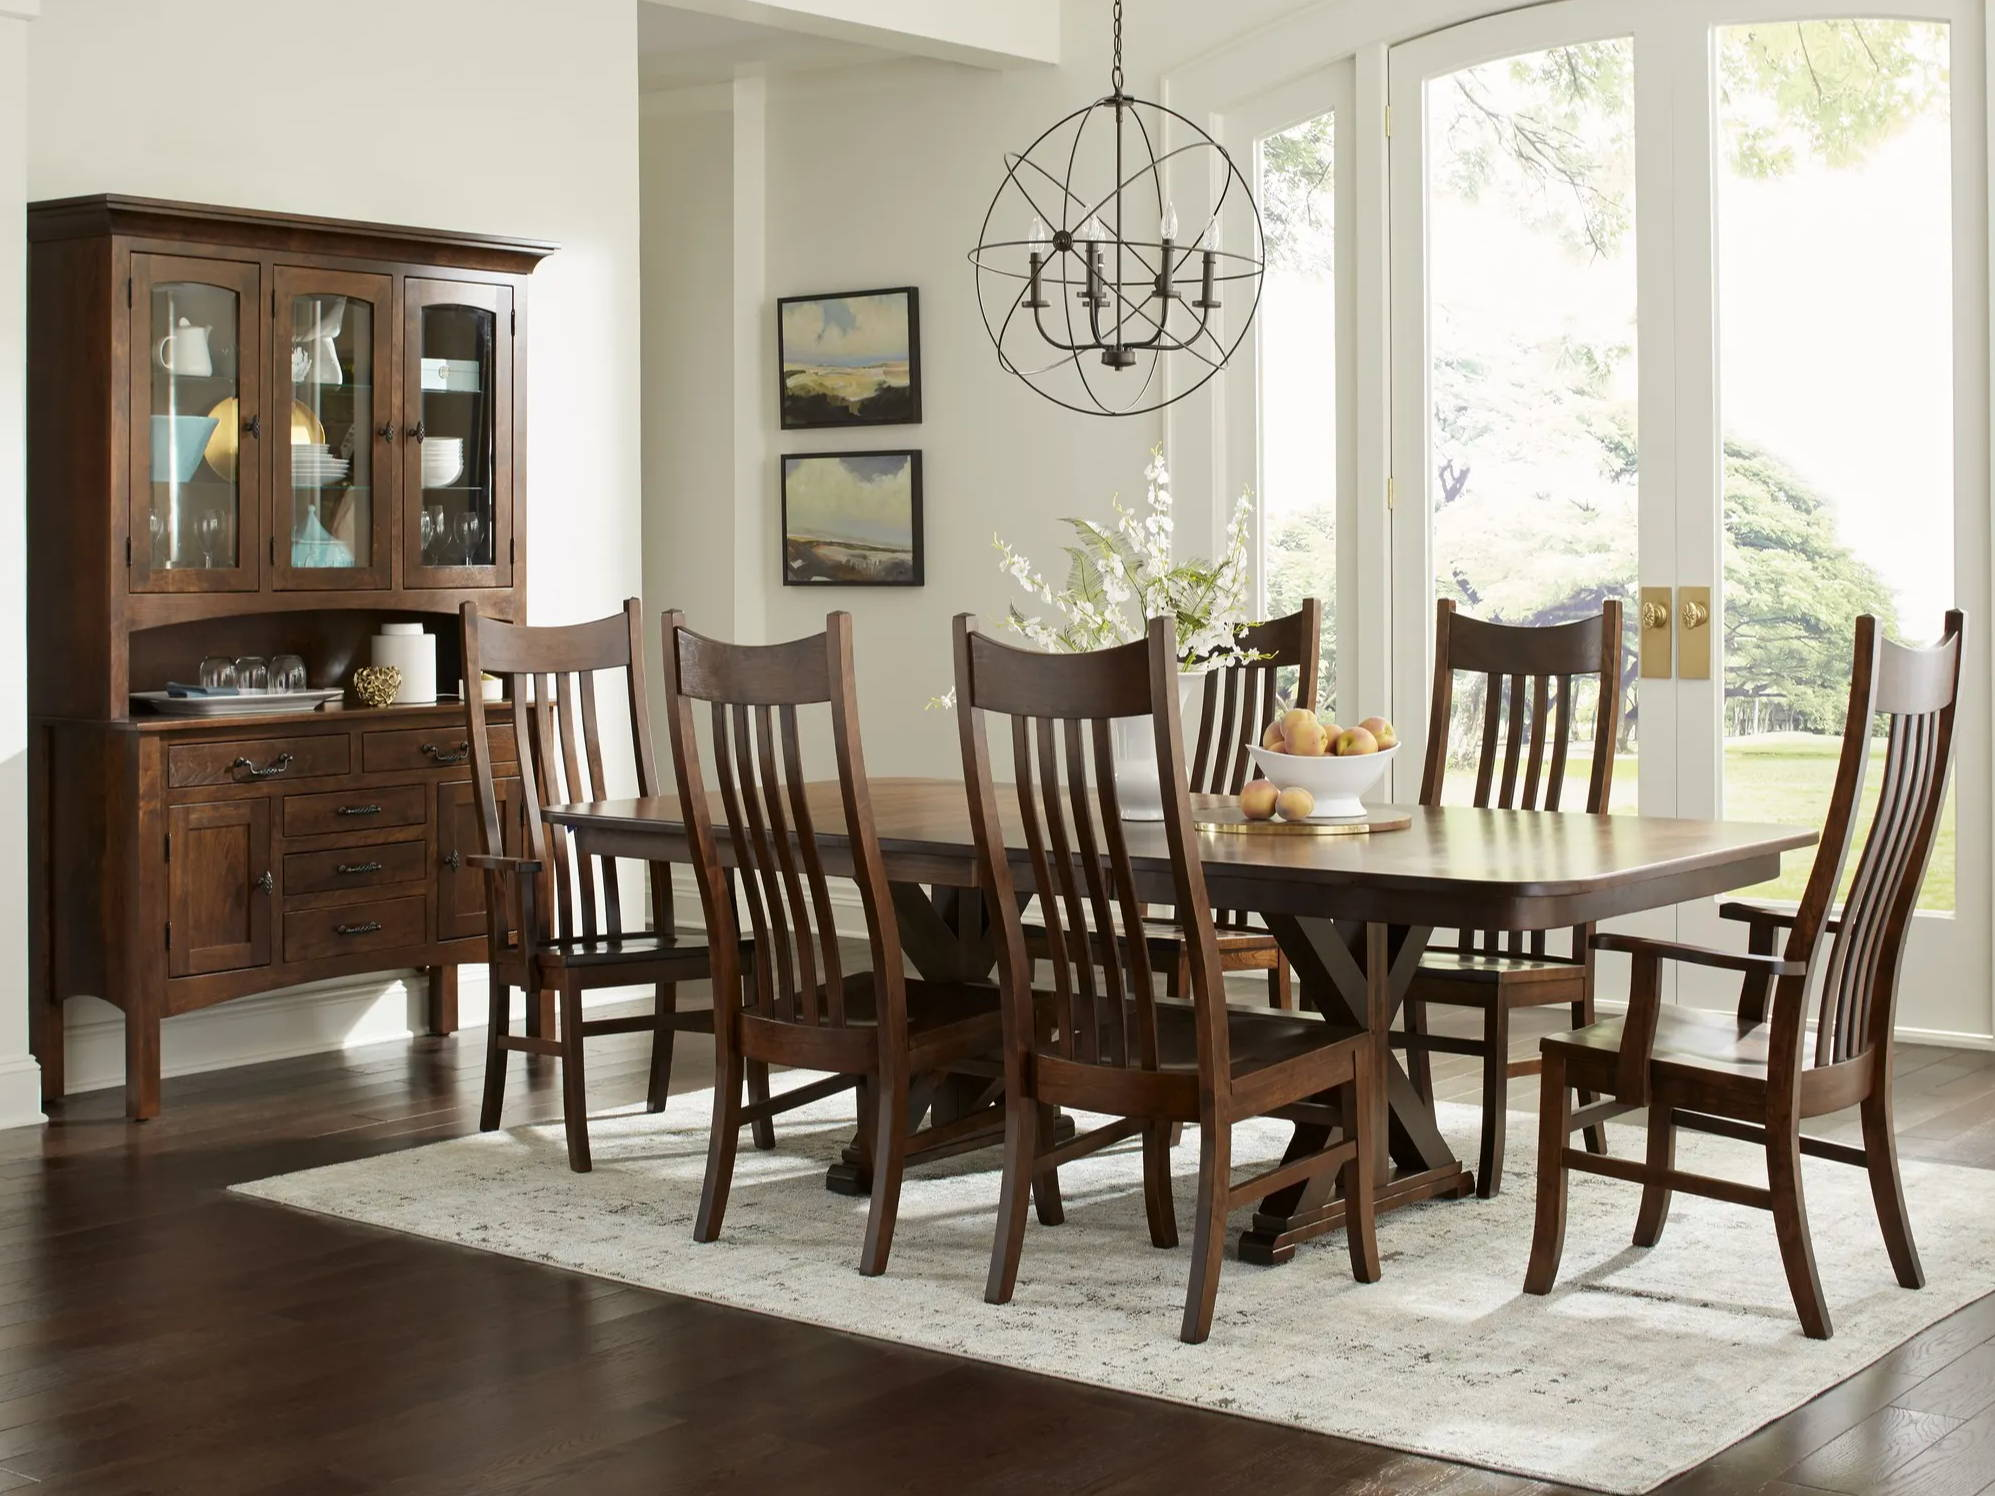 dining room scene with dark brown wood table and chairs with a china cabinet on left hand wall